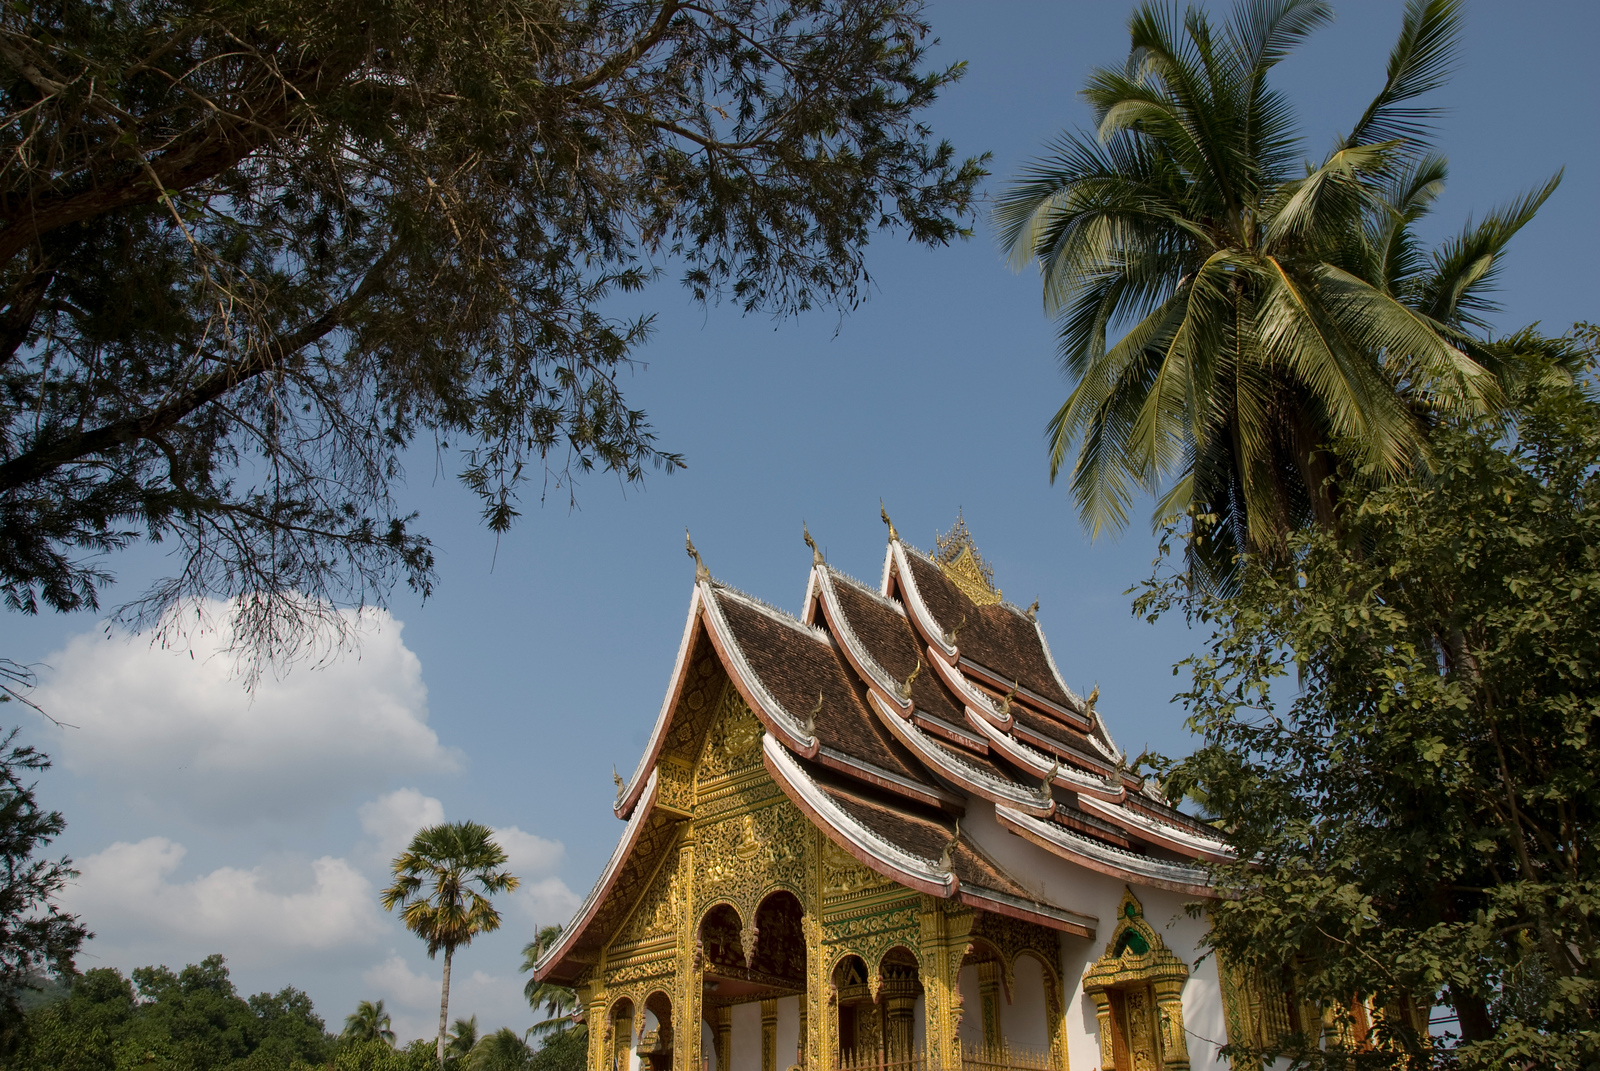 Town of Luang Prabang - UNESCO World Heritage Site